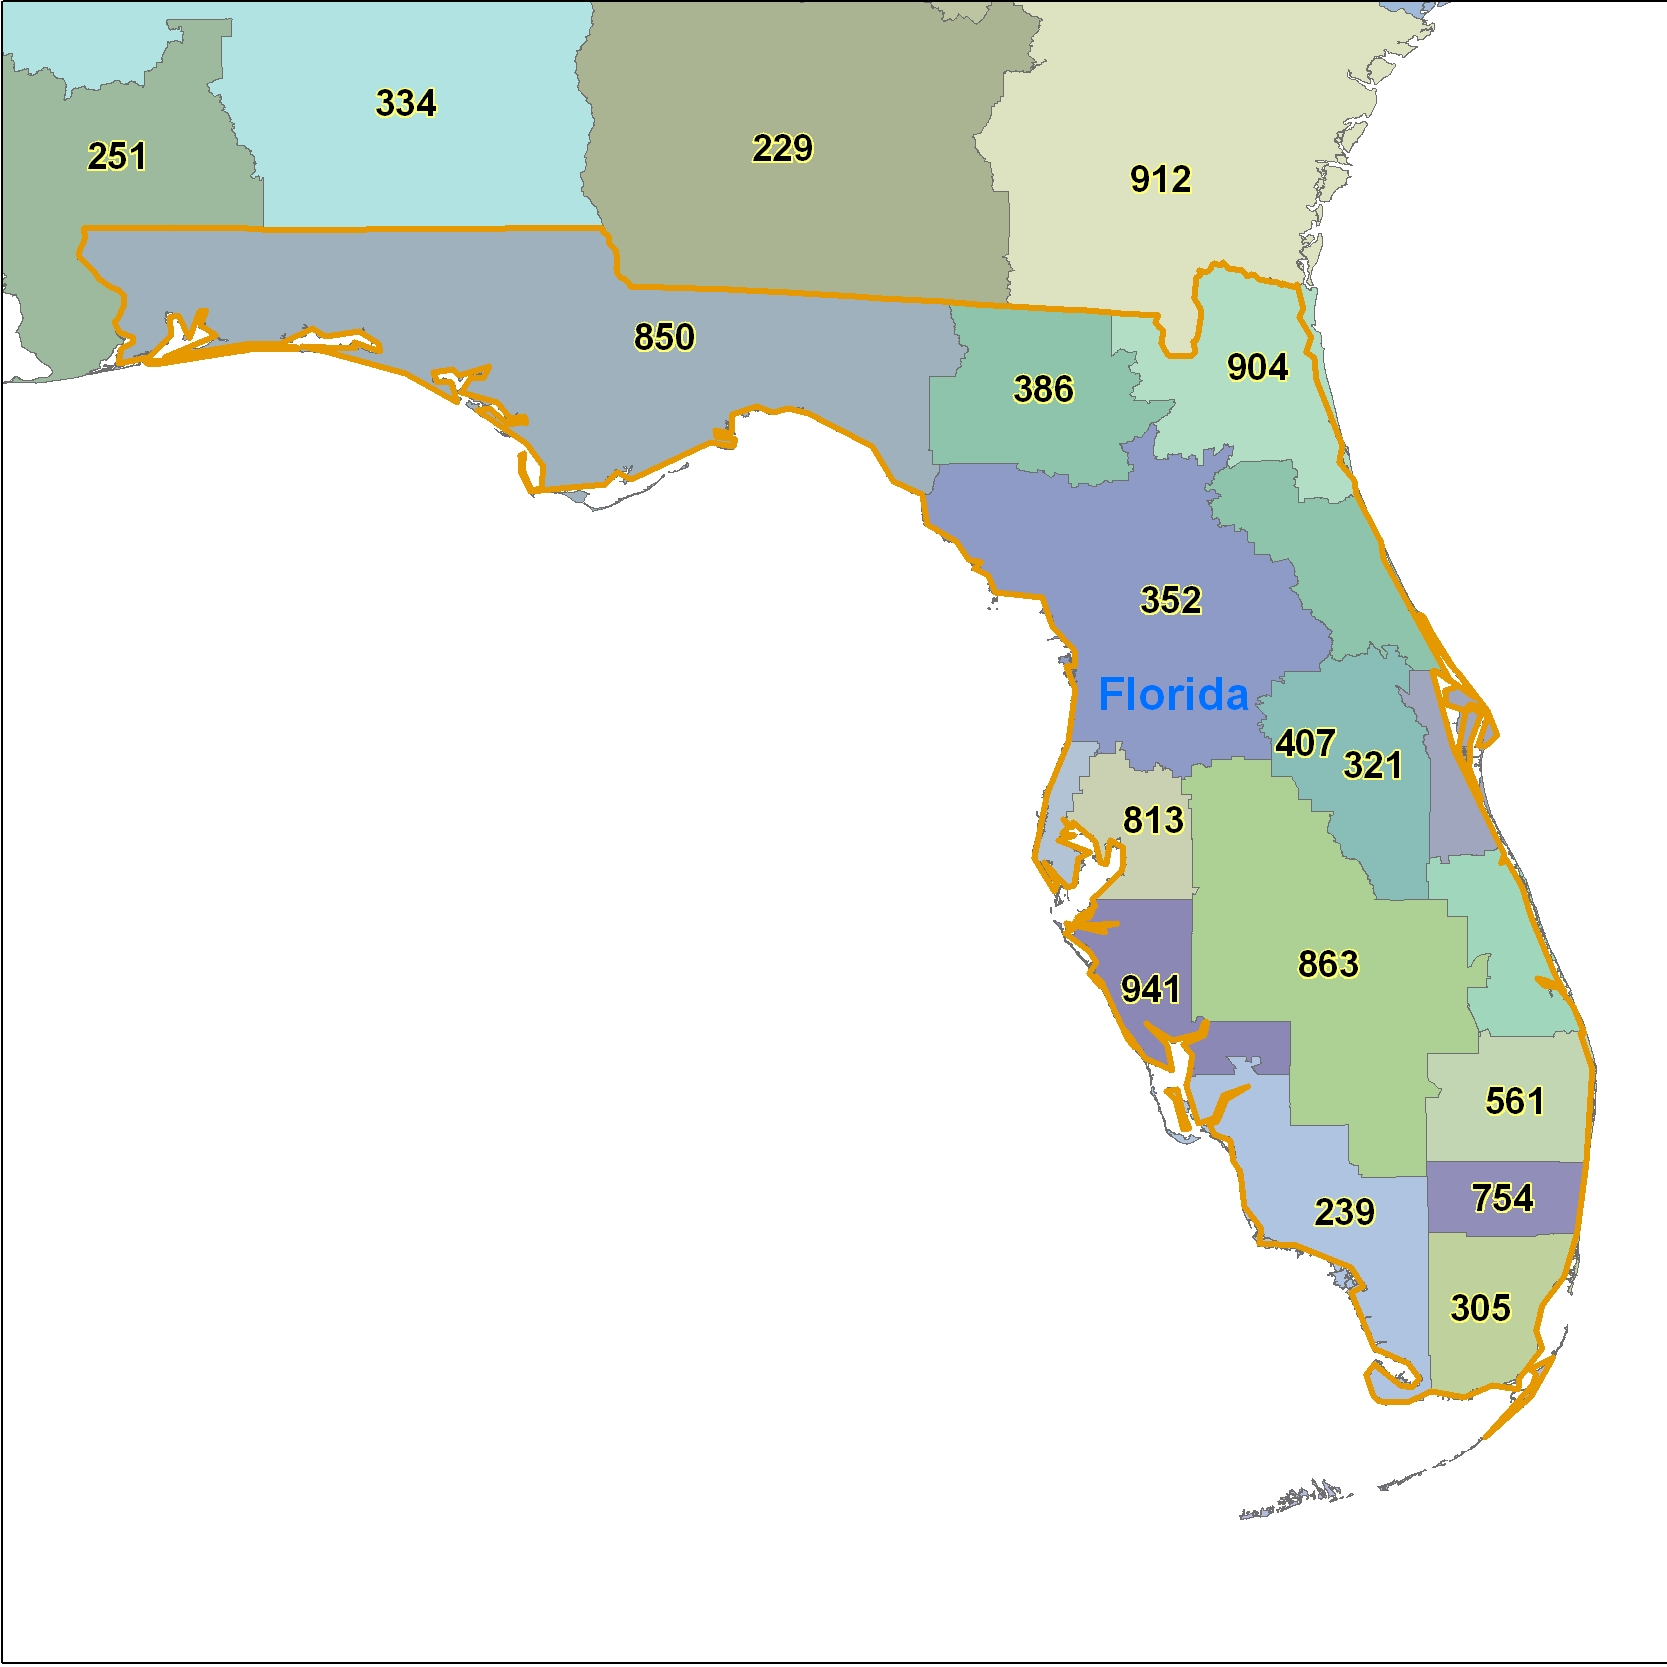 Florida Area Code Maps Florida Telephone Area Code Maps Free - Area code wisconsin map